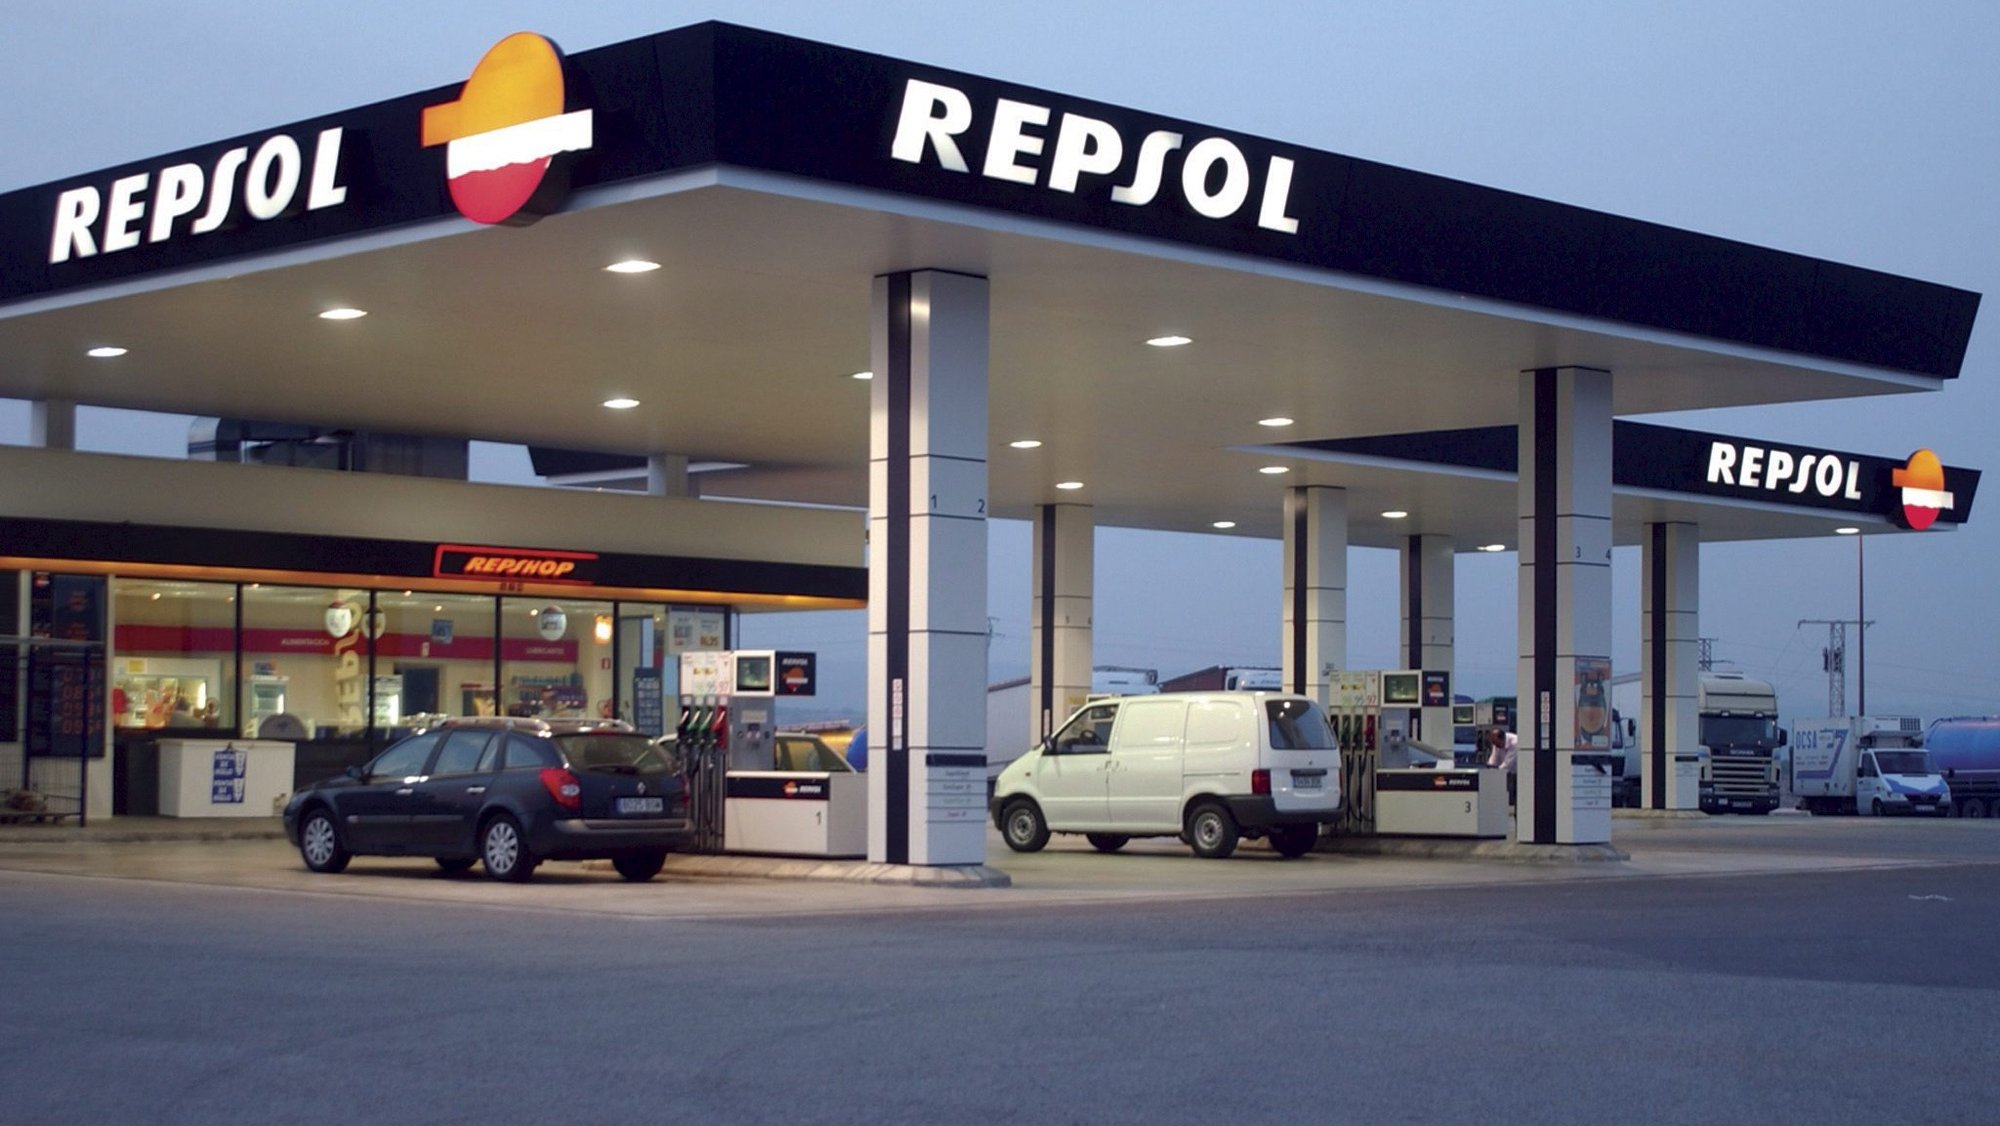 epa02599145 (FILE) A undated handout image provided by Repsol YPF of a Repsol service station at an undisclosed location. Repsol reported 24 February 2011 the company posted net income of 4.693 billion euros for 2010 compared to 1.559 billion euros in the previous year. Excluding extraordinary items, recurring net profit improved 54.9 per cent to 2.360 billion euros. The 2010 earnings increase was mainly due to the good performance of the company's ongoing activities, boosted in the fourth quarter by the capital increase of Repsol Brazil.  EPA/REPSOL YPF/HO  EDITORIAL USE ONLY/NO SALES *** Local Caption *** 00000401270125